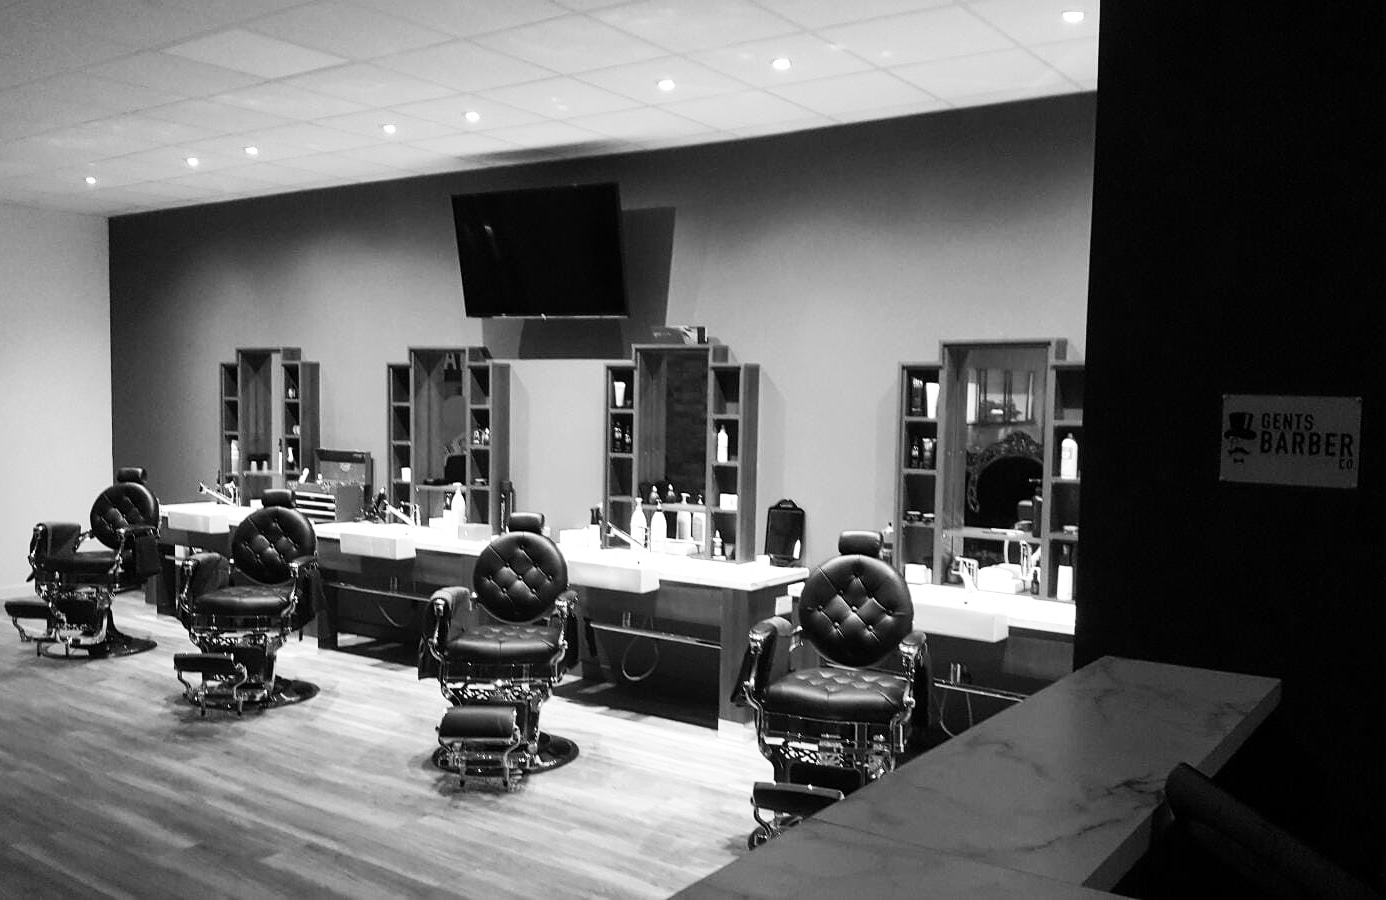 Barbers Barber Shop in Portmarnock Dublin